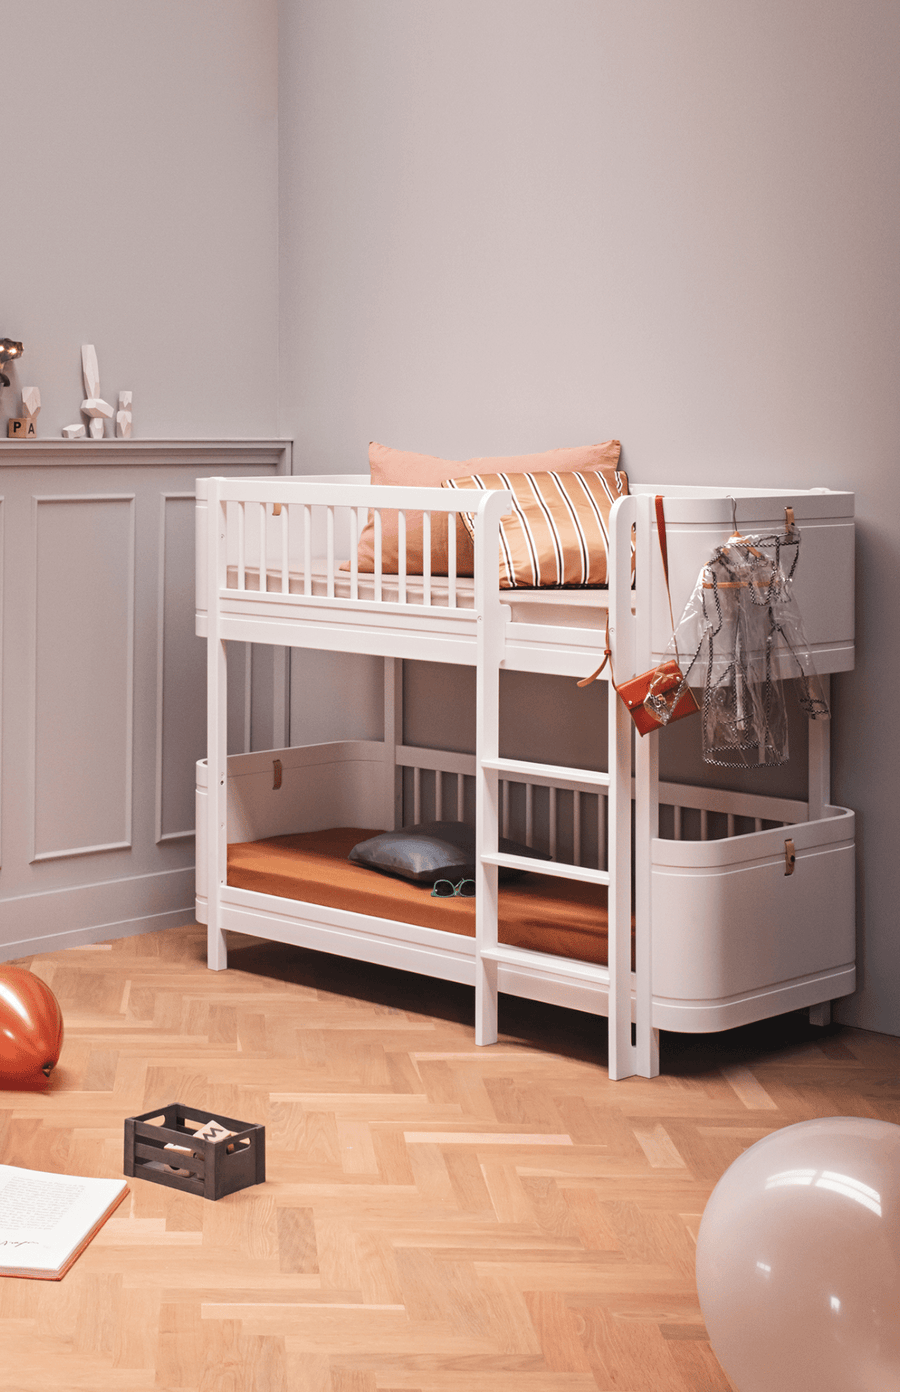 Oliver Furniture Mini+ Low Bunk Bed